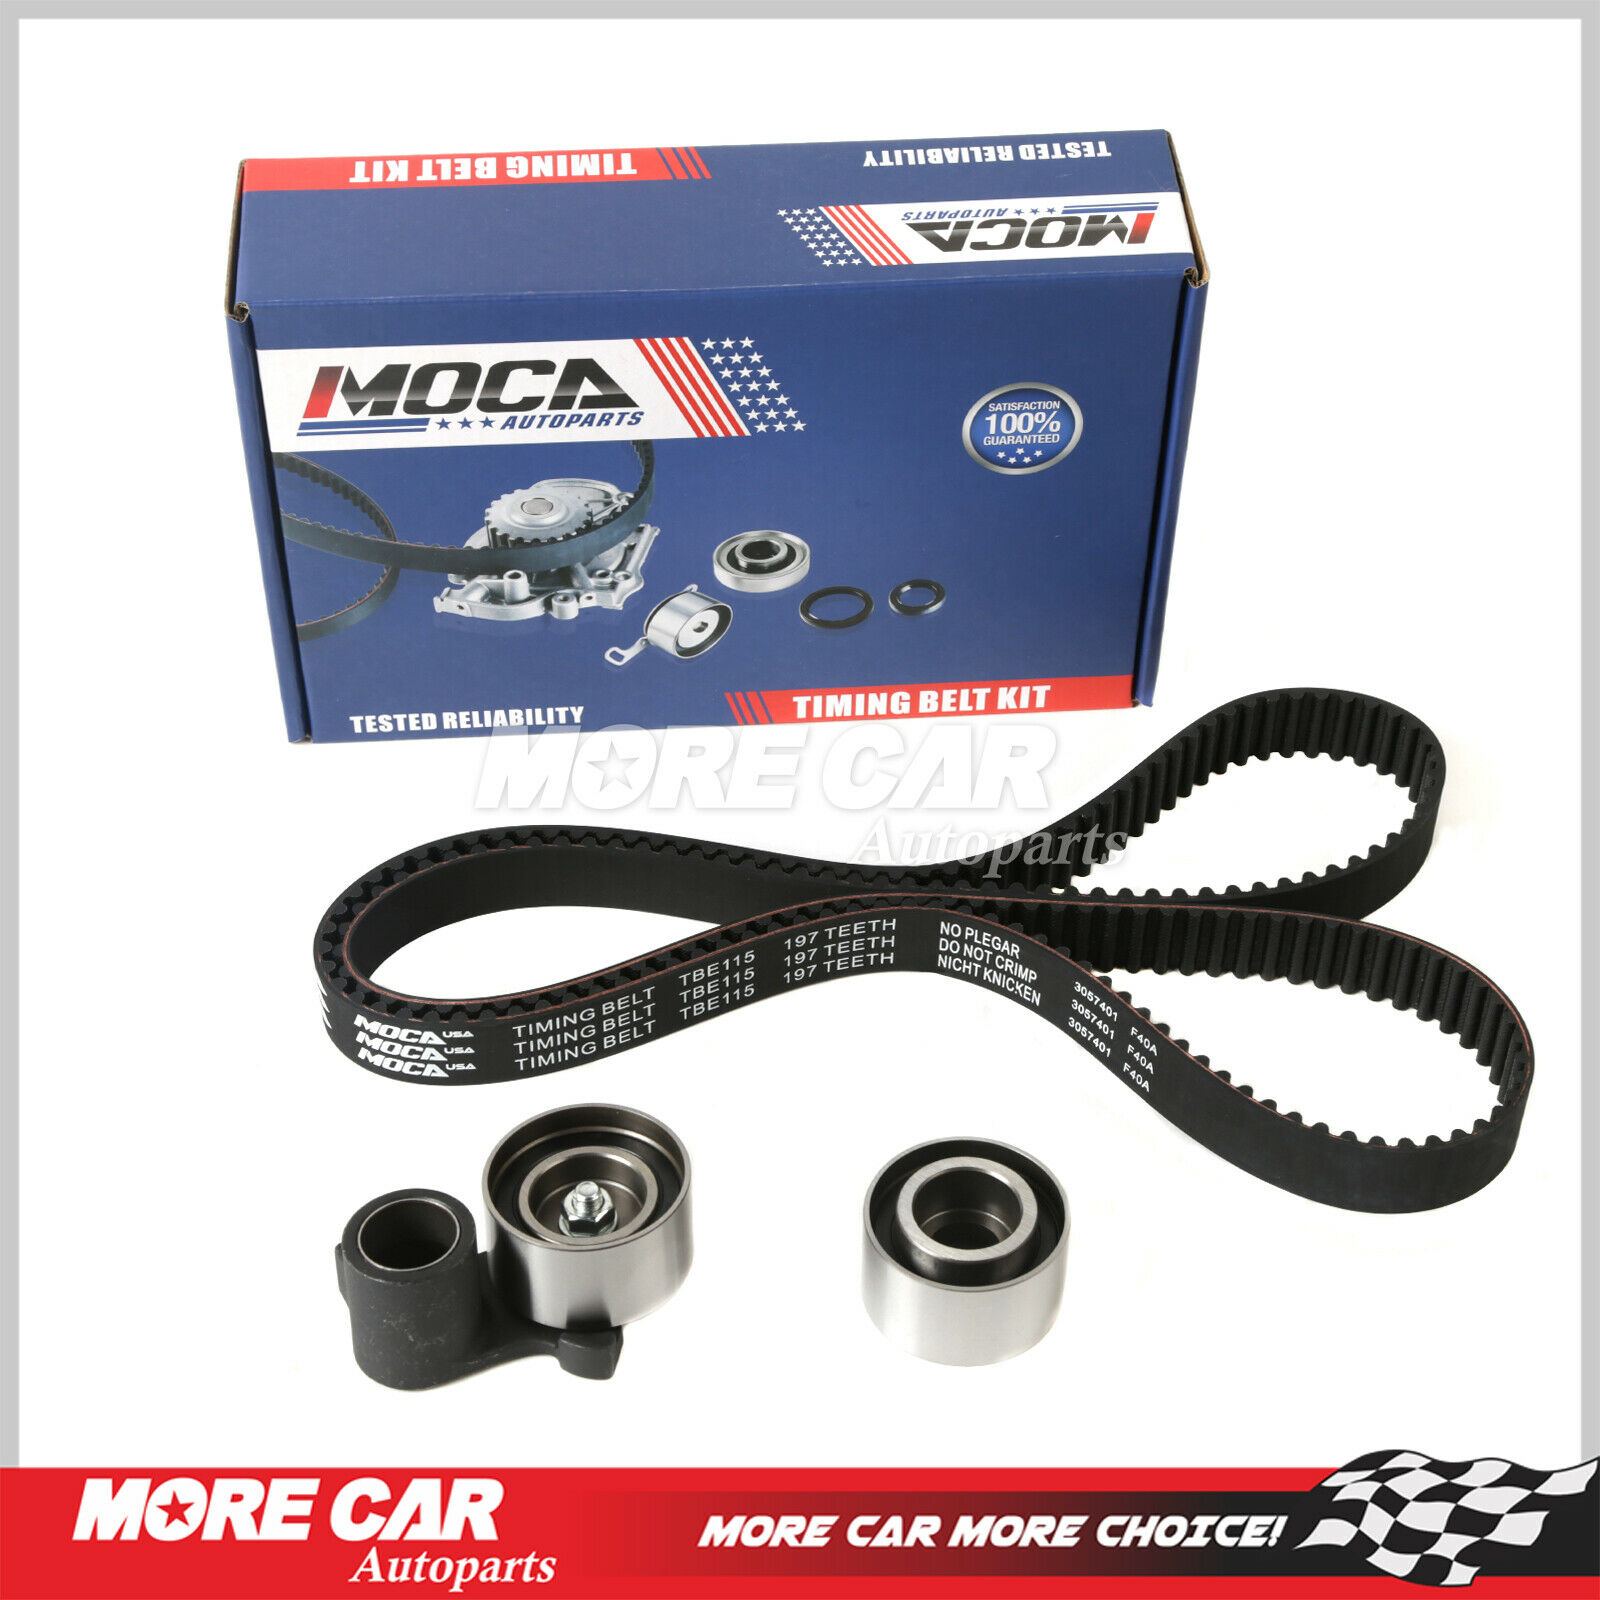 Timing Belt Kit For 97-04 Acura TL CL MDX Honda Accord